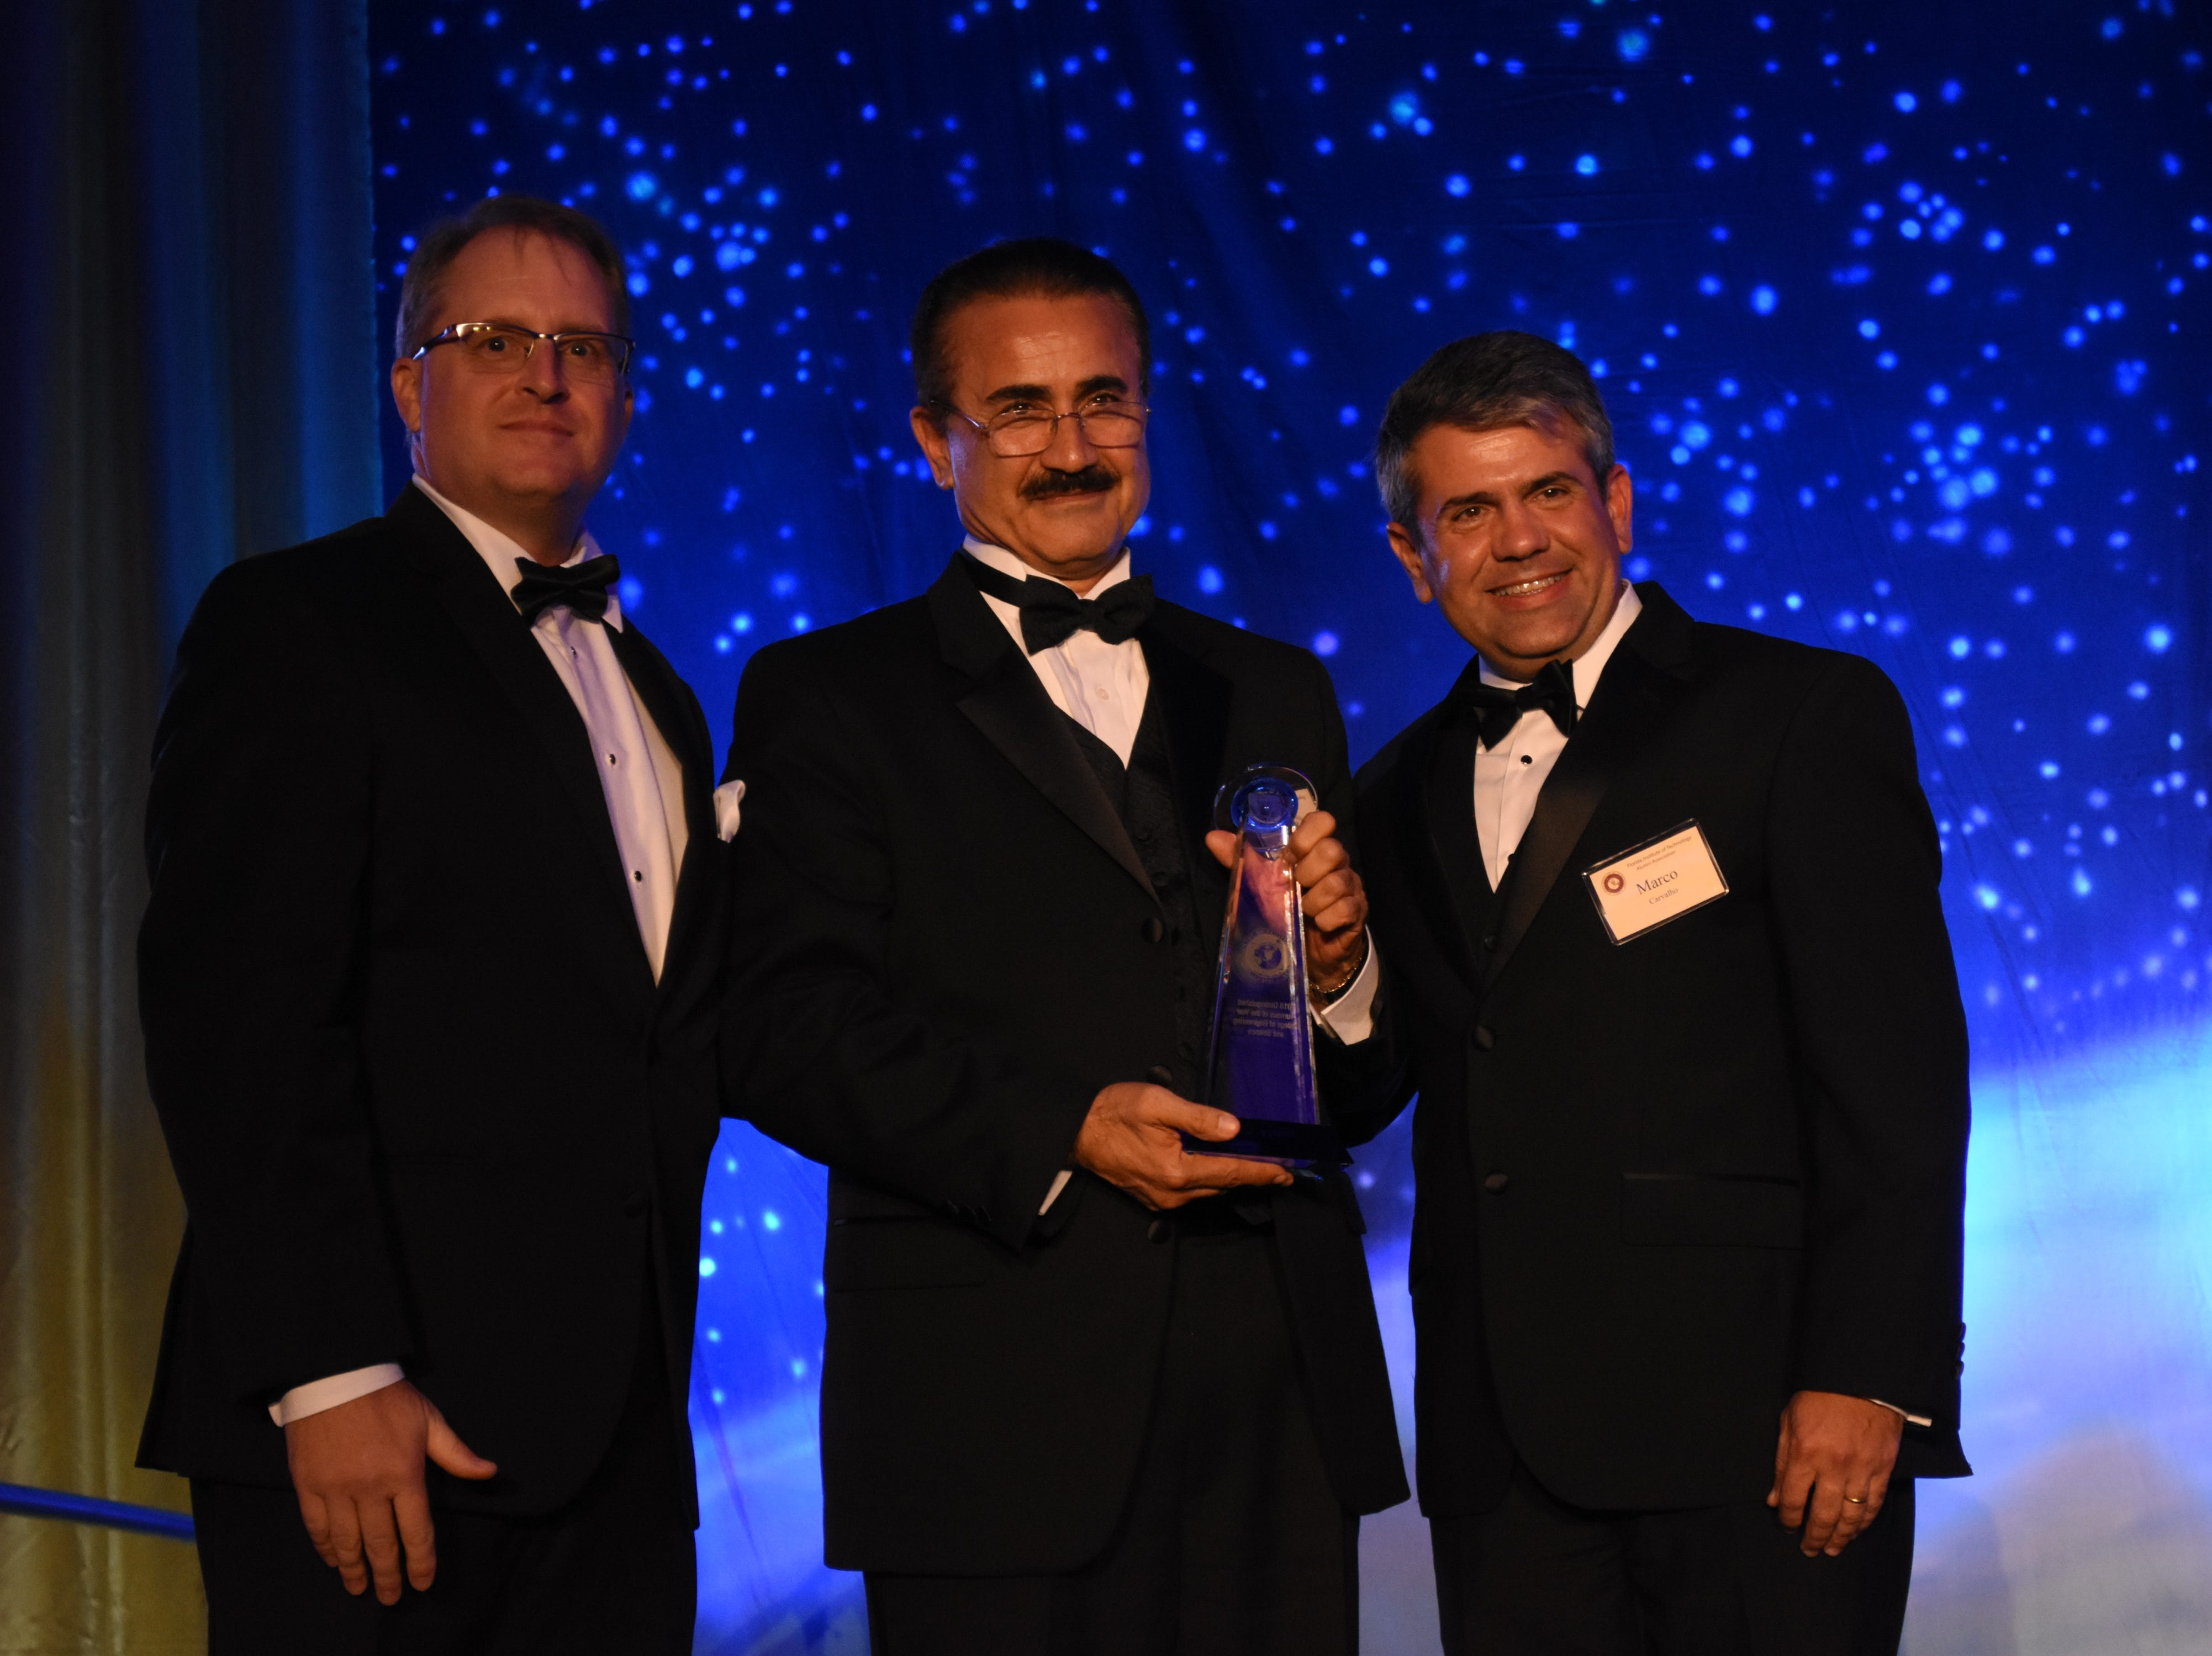 College of Engineering's Mojy Chian is presented the Outstanding Alumni award at Florida Tech's 60th Anniversary Homecoming Gala Oct. 13, 2018, at the Clemente Center.